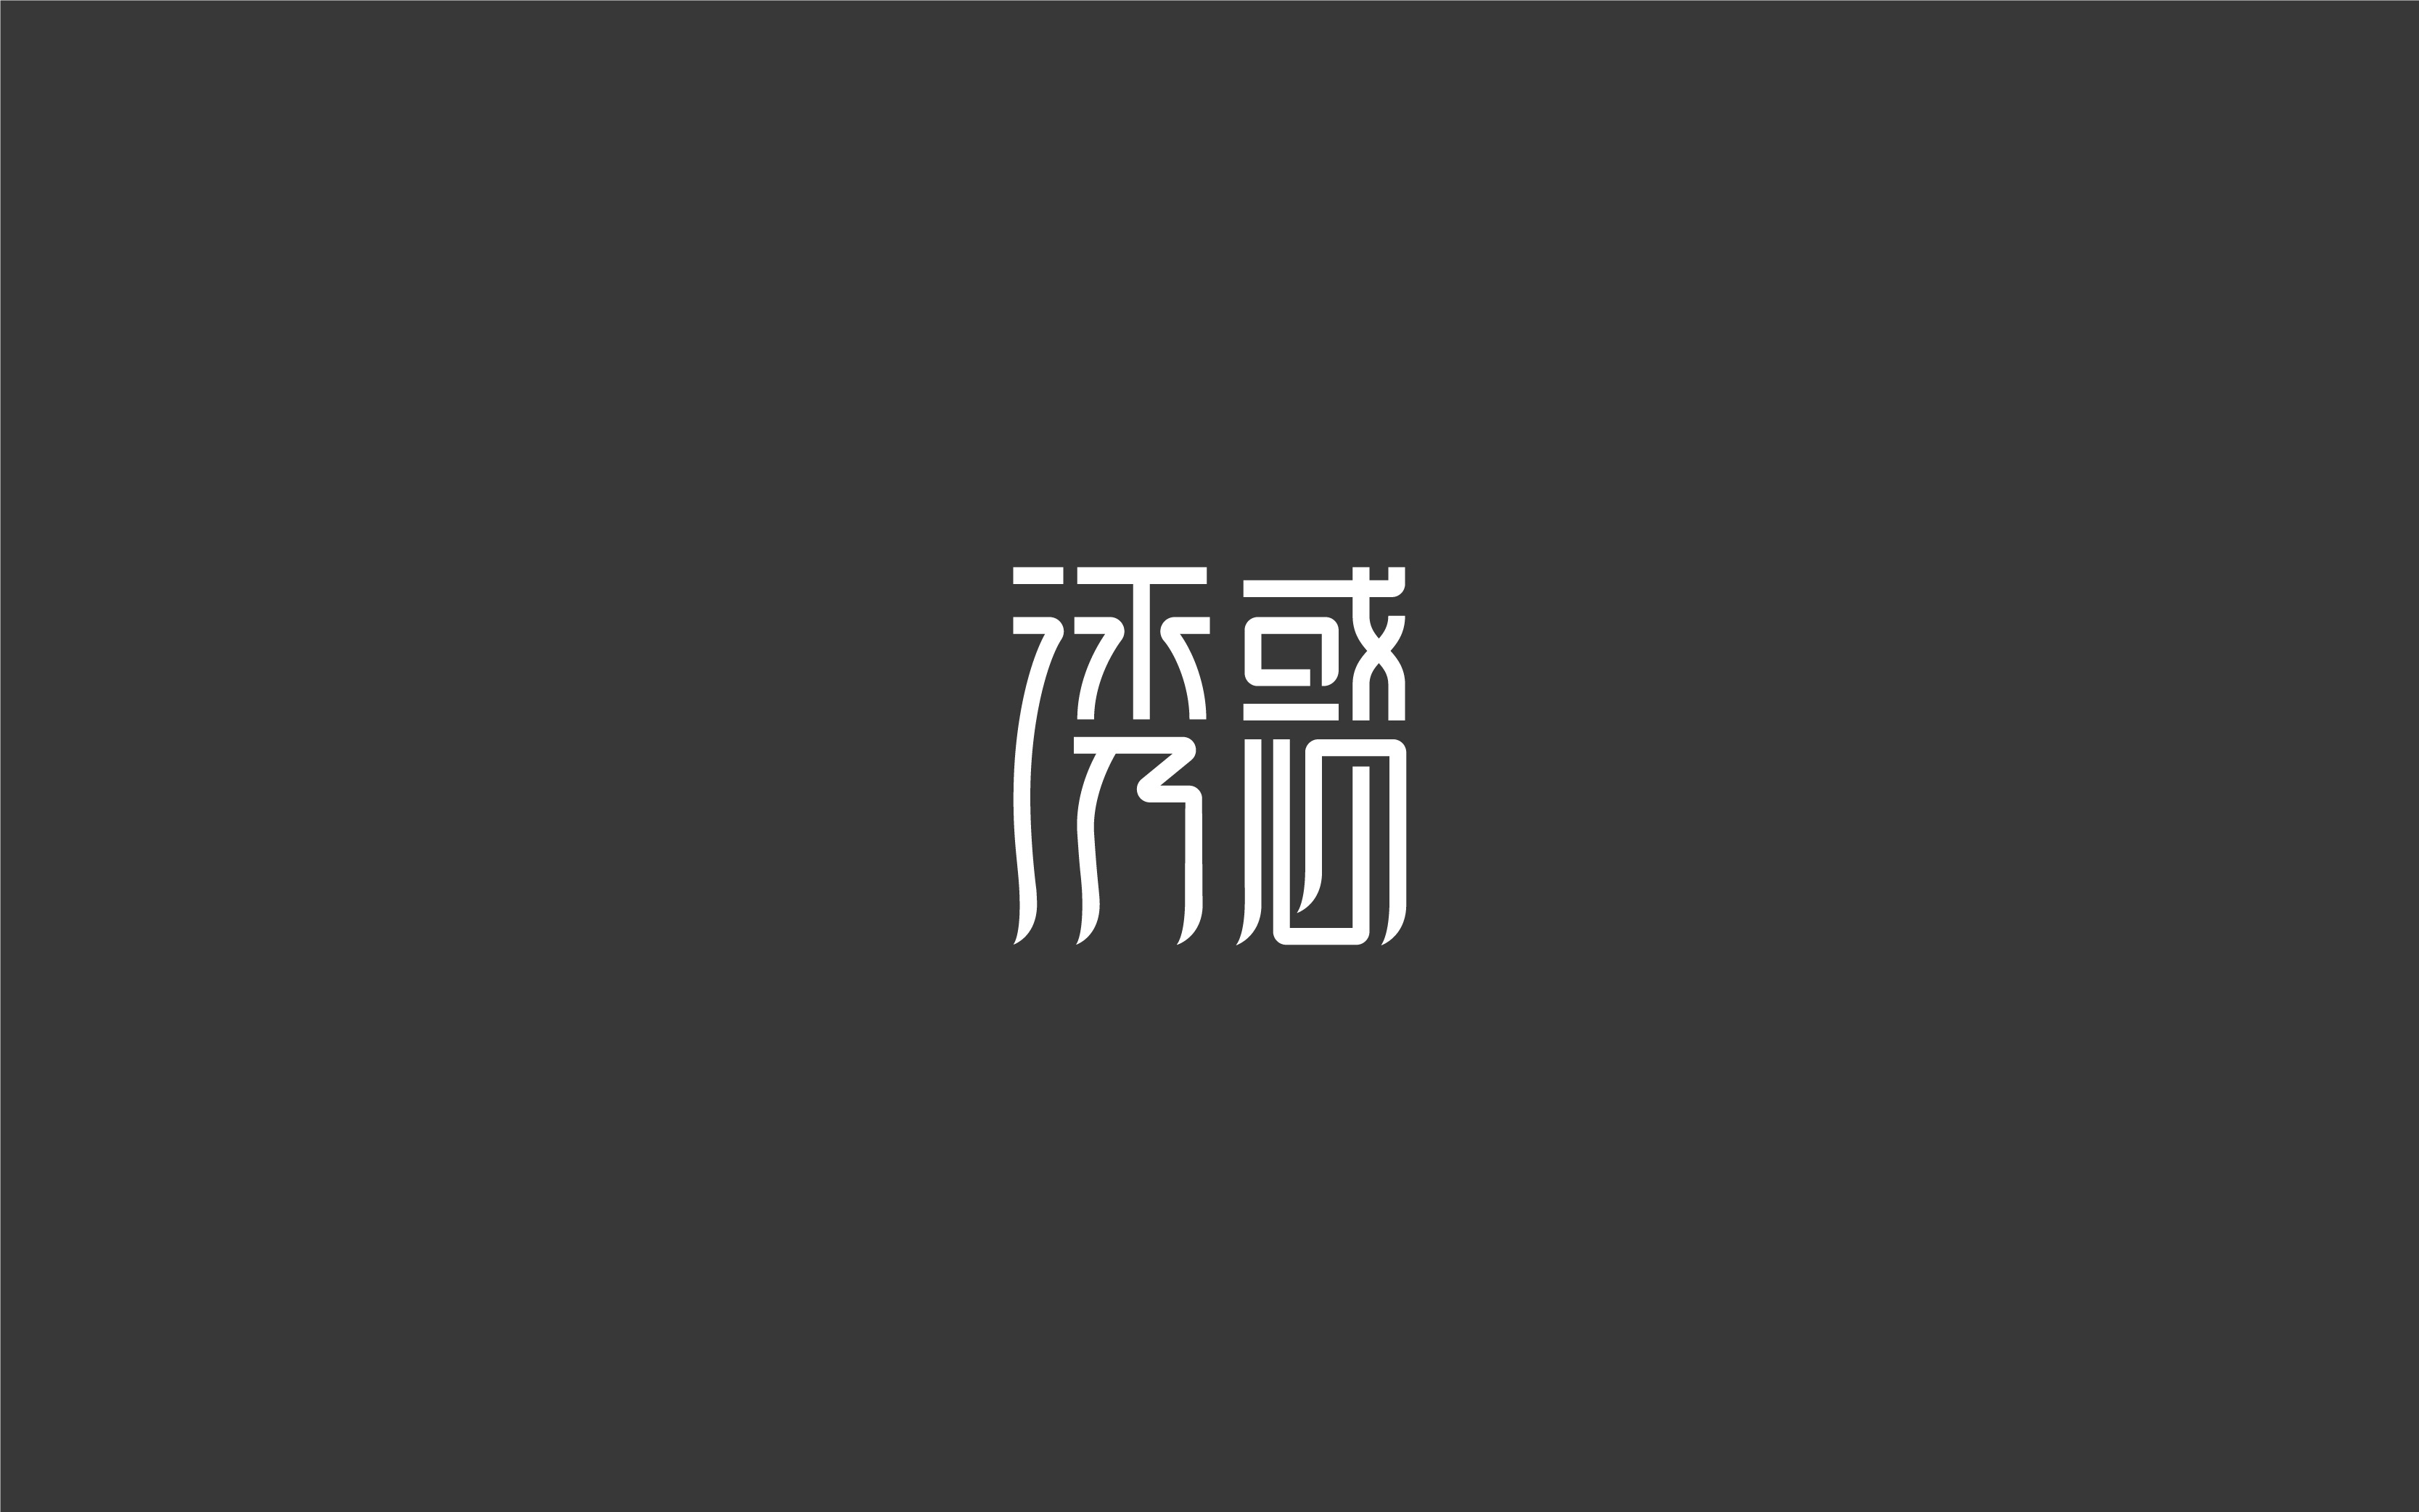 chinesefontdesign.com 2017 06 11 14 24 01 916697 35P Chinese font design training China Logo design